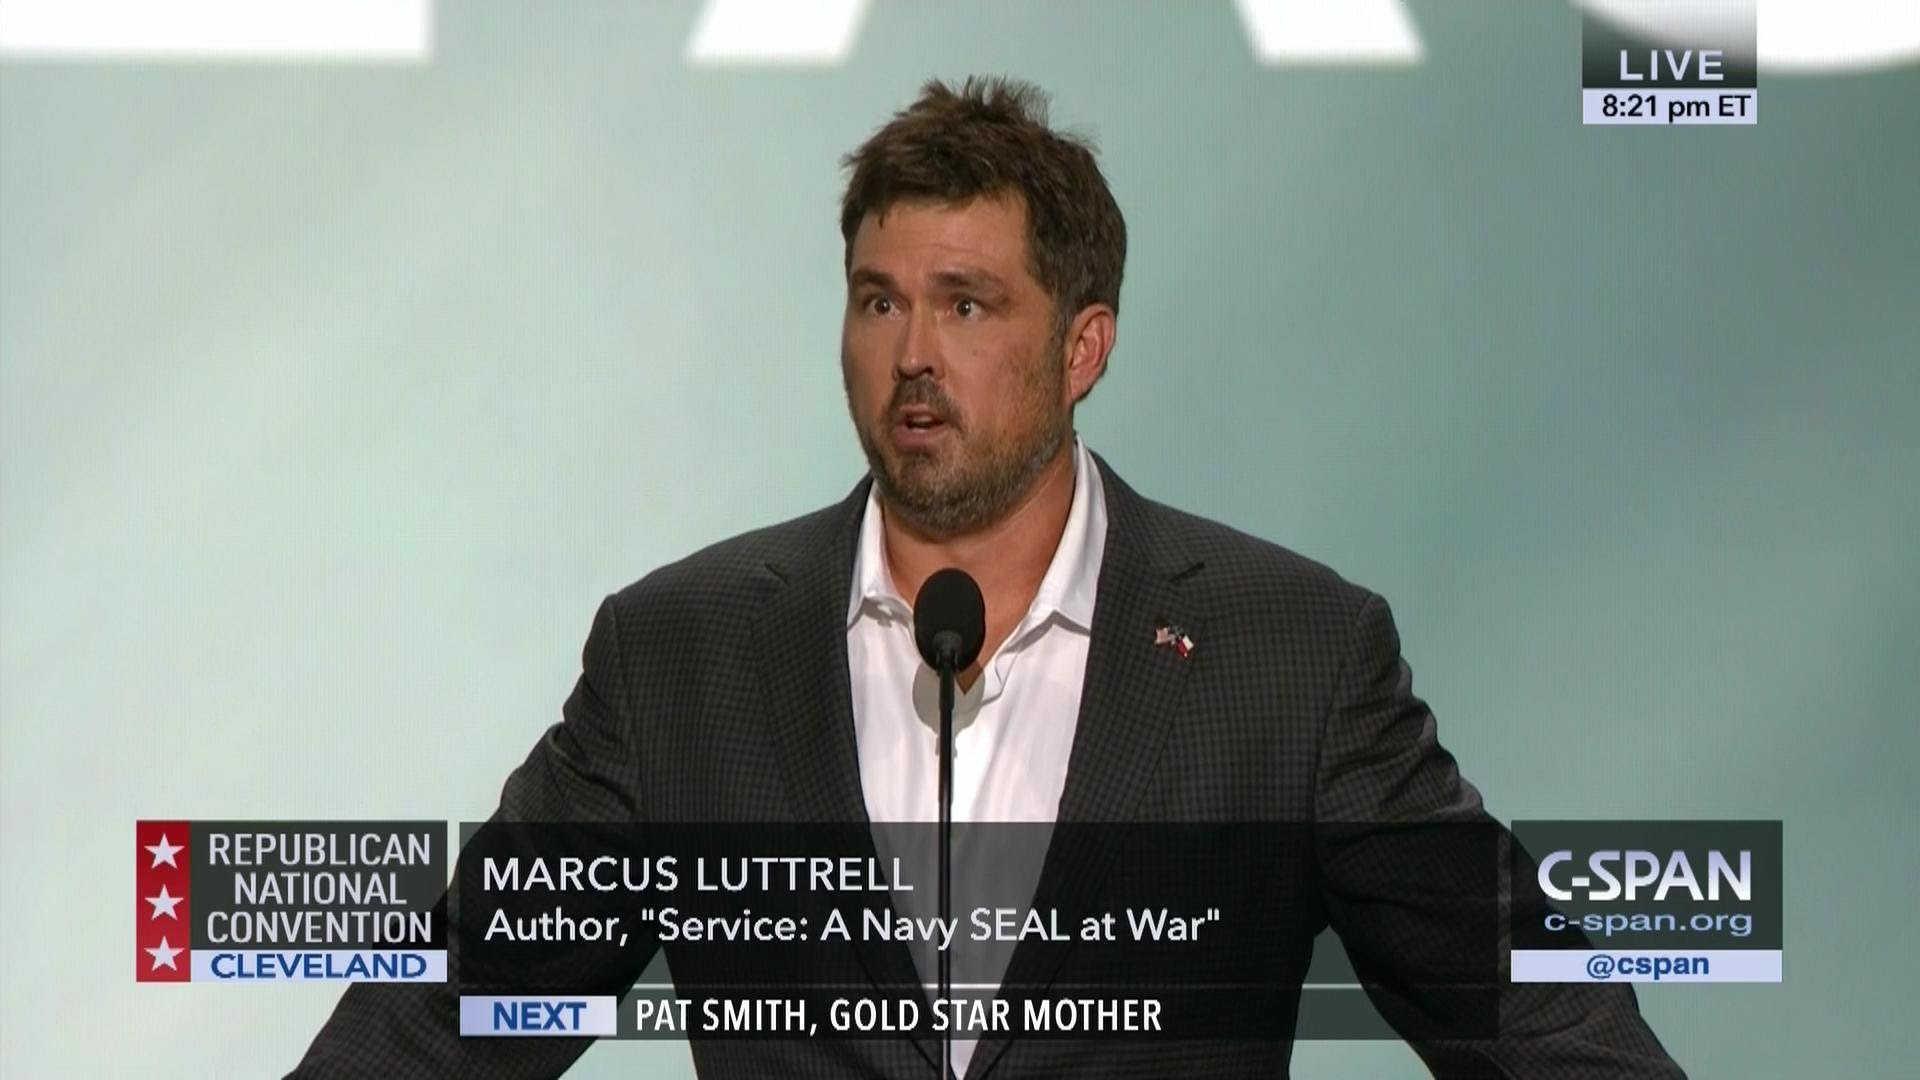 marcus luttrell rnc 2016